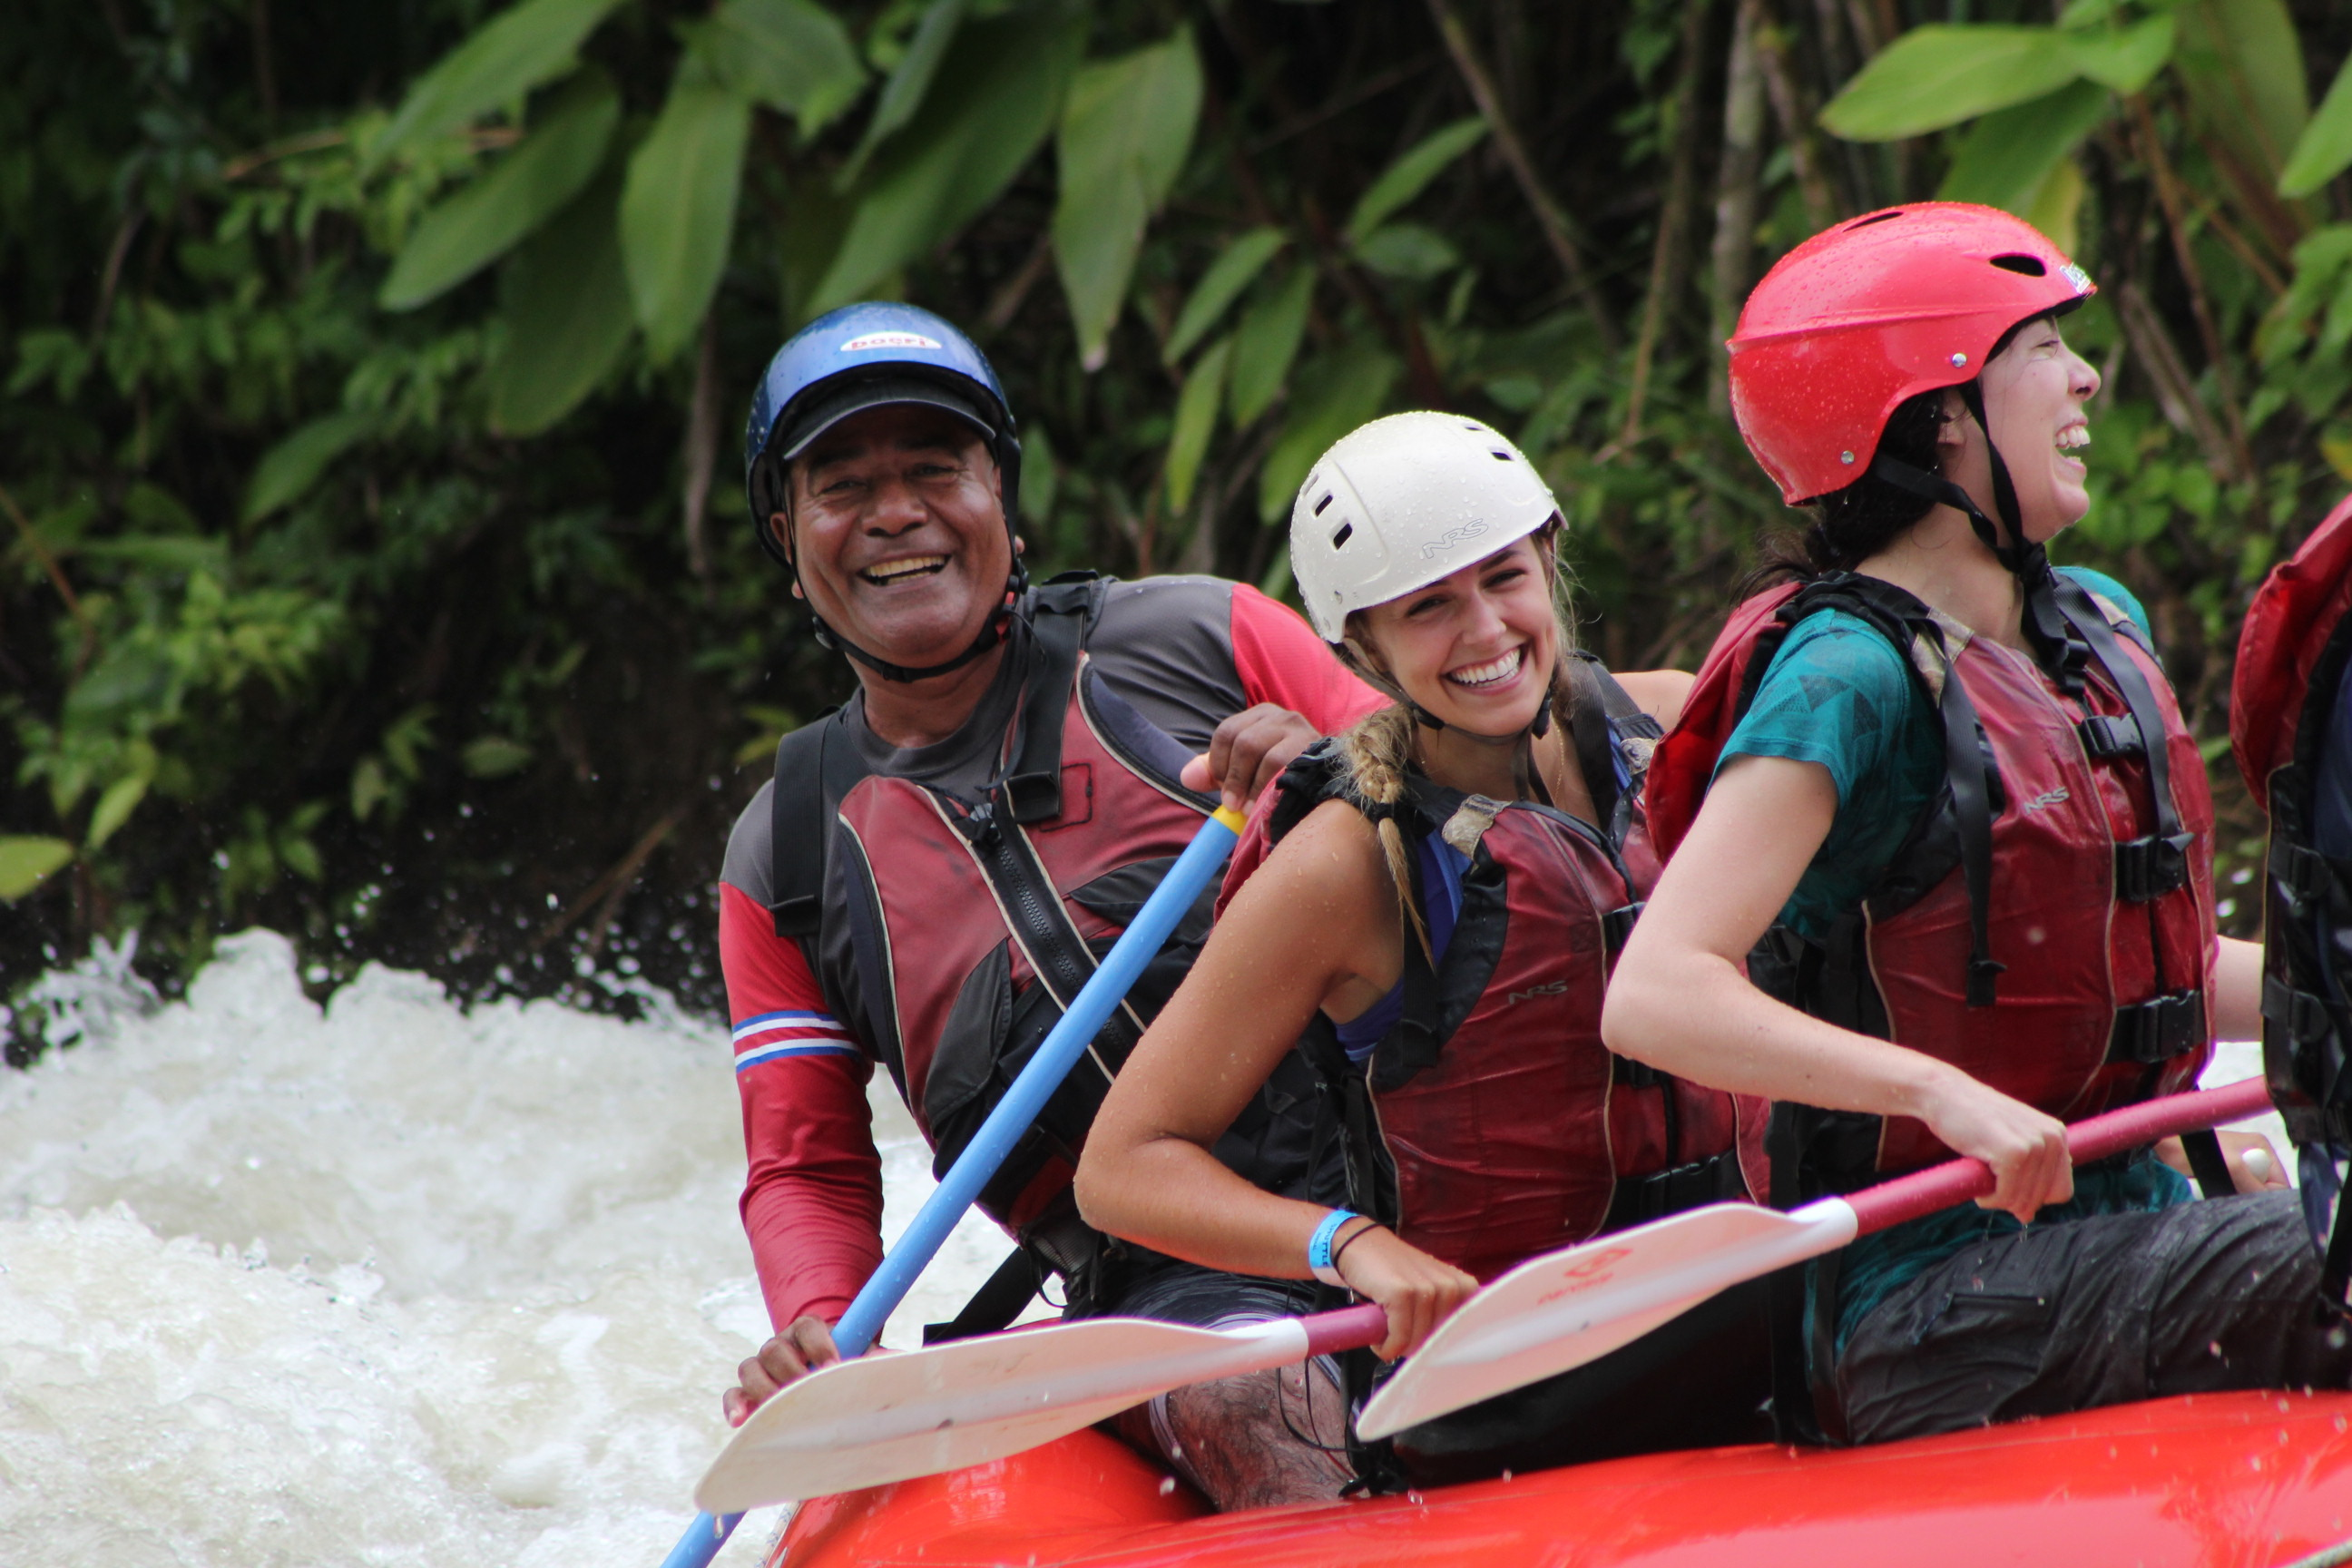 Challenge yourself as you paddle down 10 kilometers of fun and slower rolling rapids